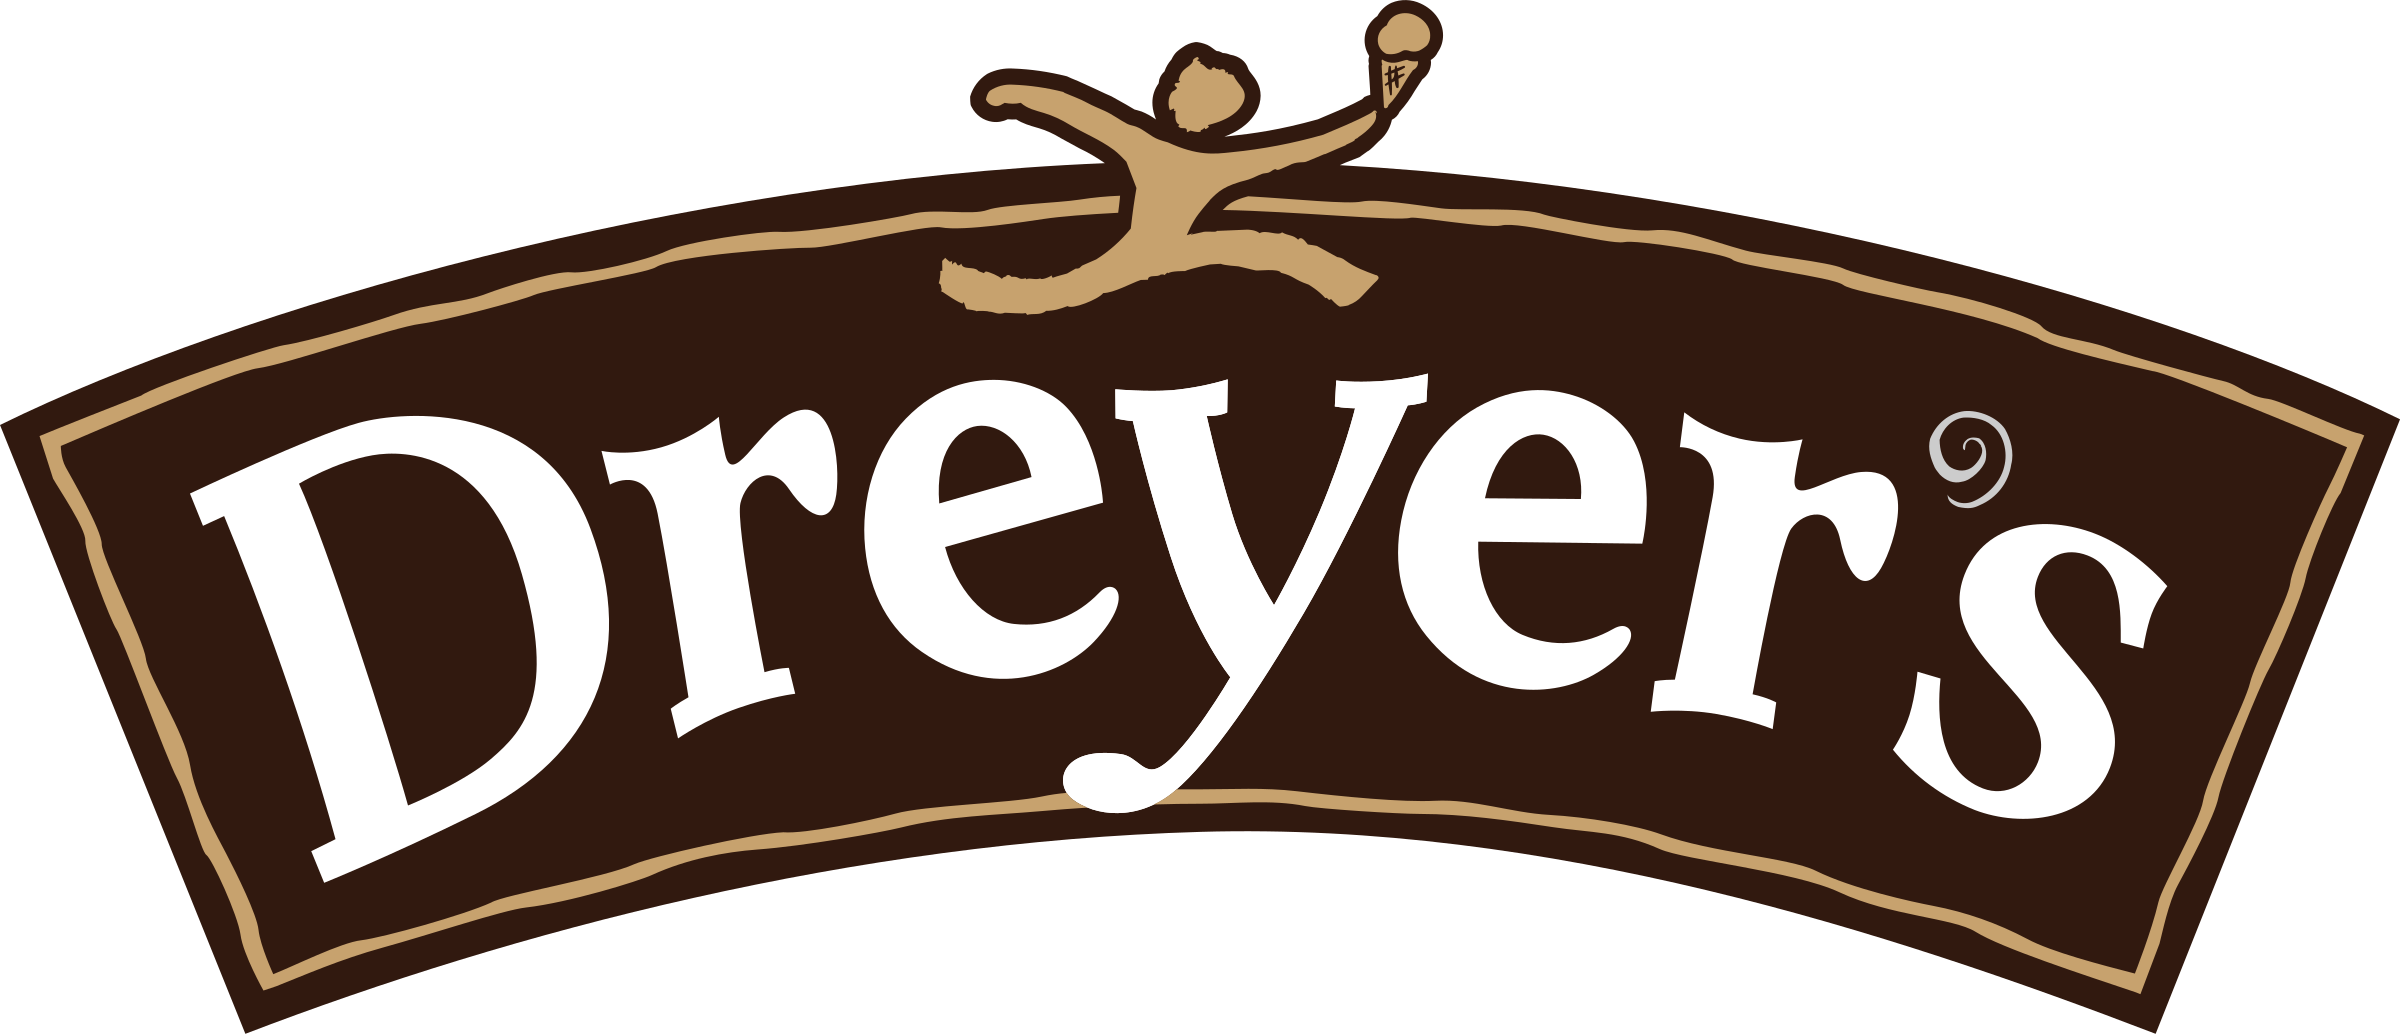 dreyers-ice-cream-logo-png-transparent.png